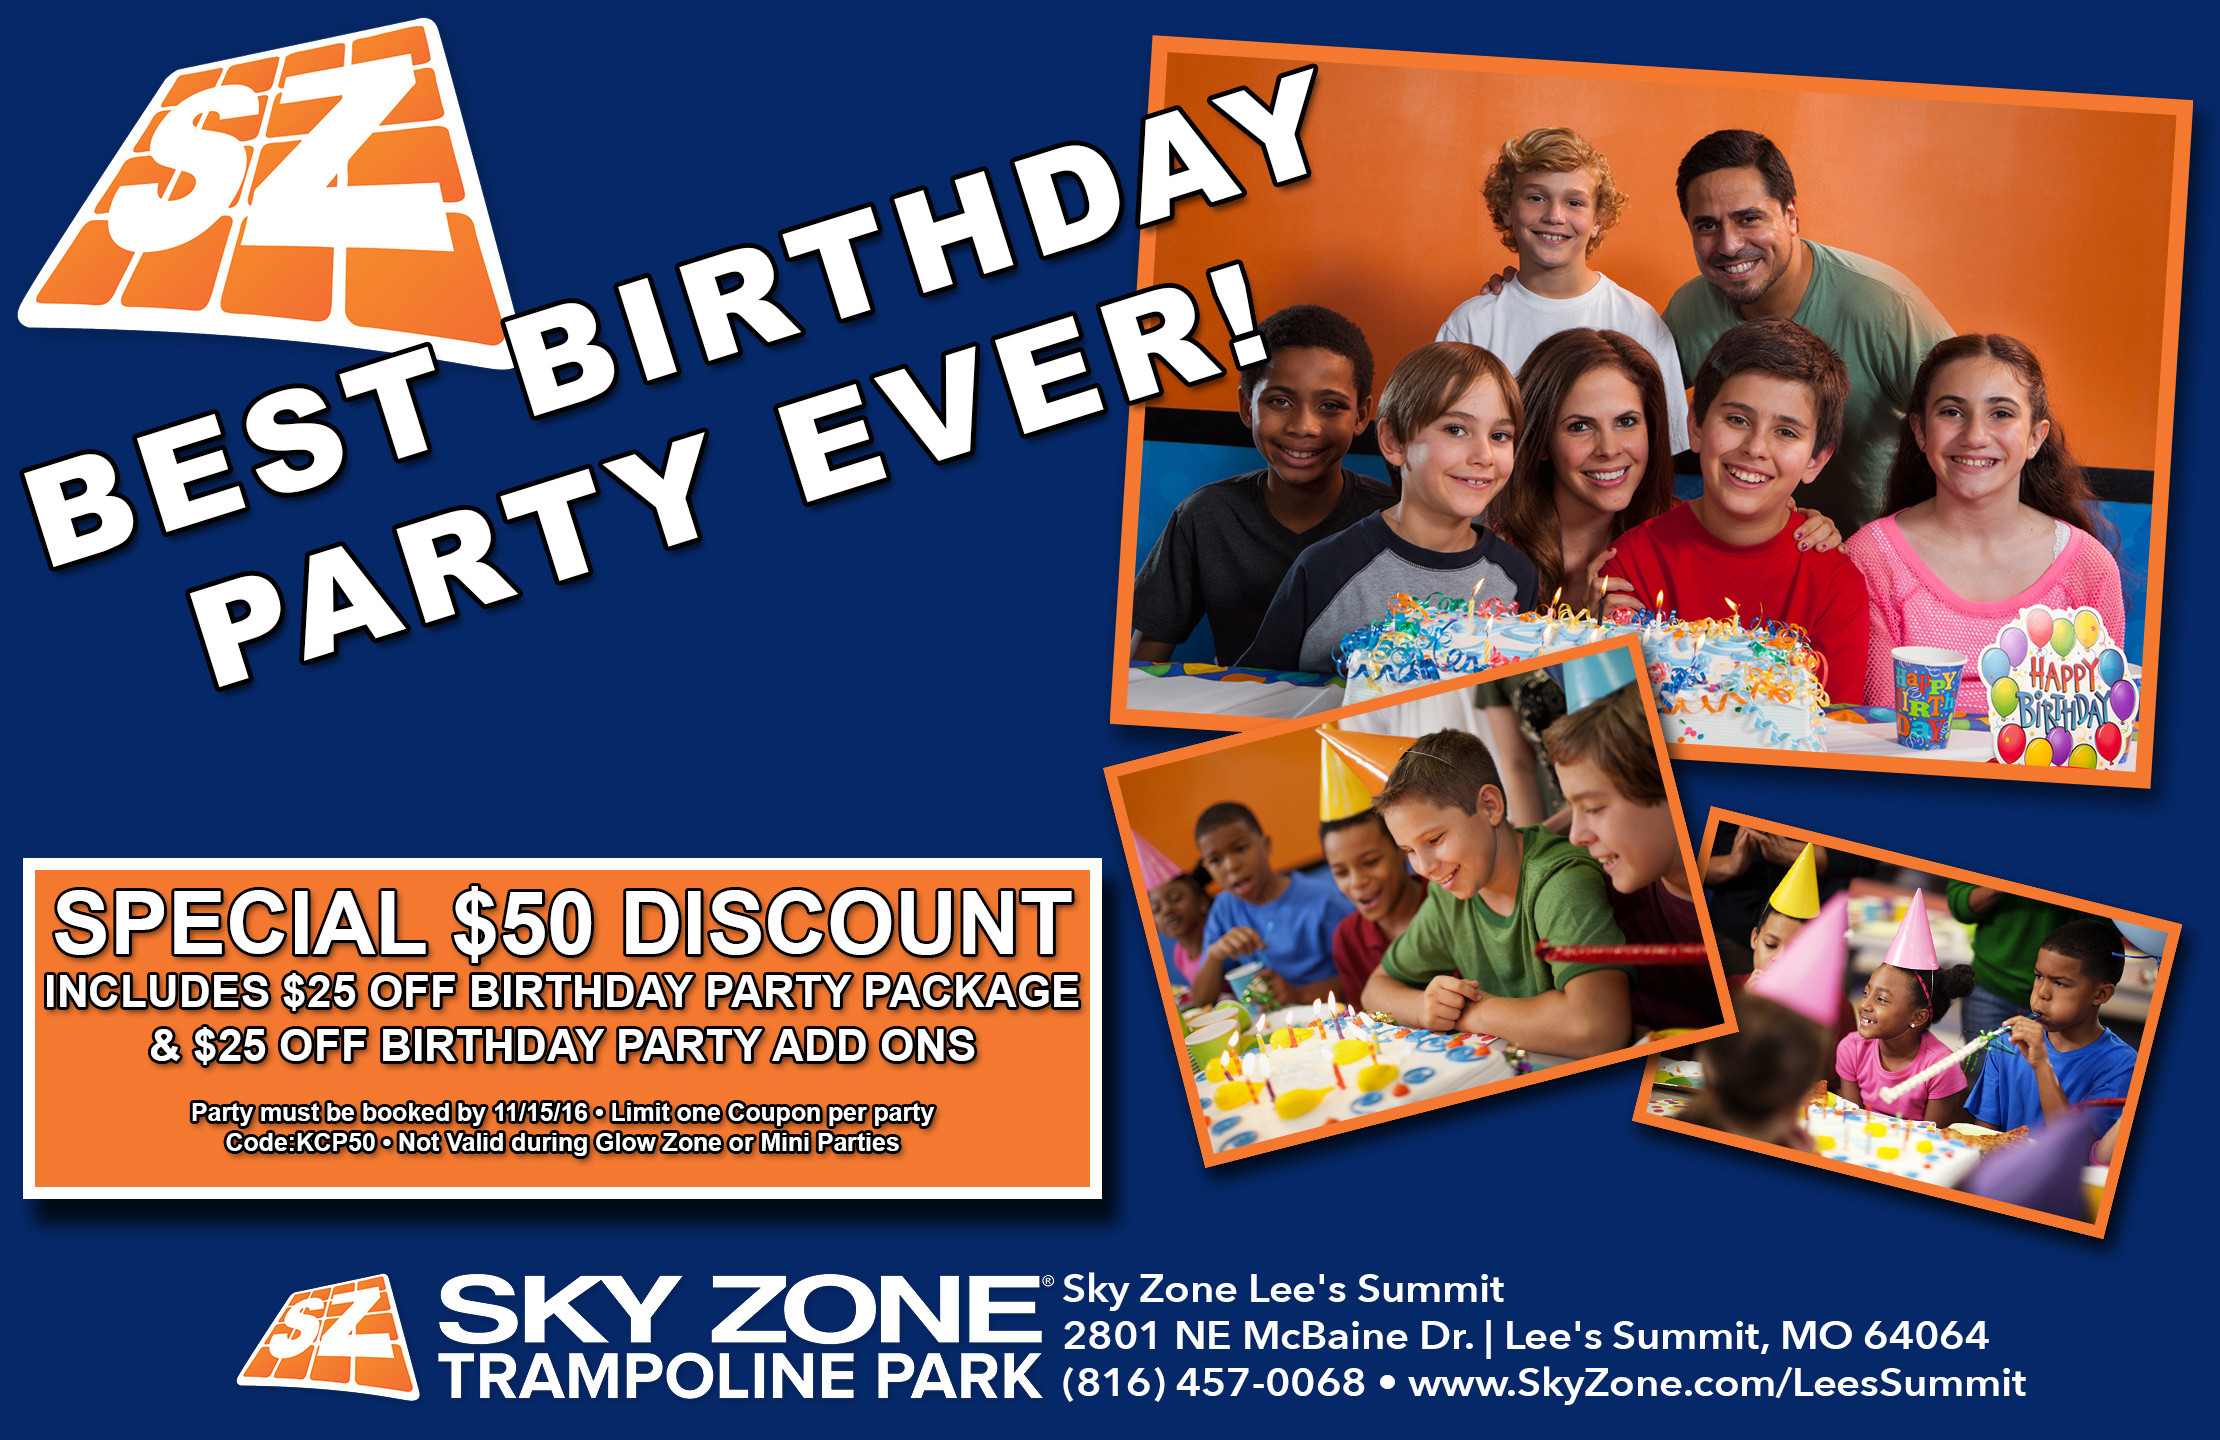 Best ideas about Sky Zone Birthday Party Coupons . Save or Pin Unique Sky Zone Printable Coupons Now.